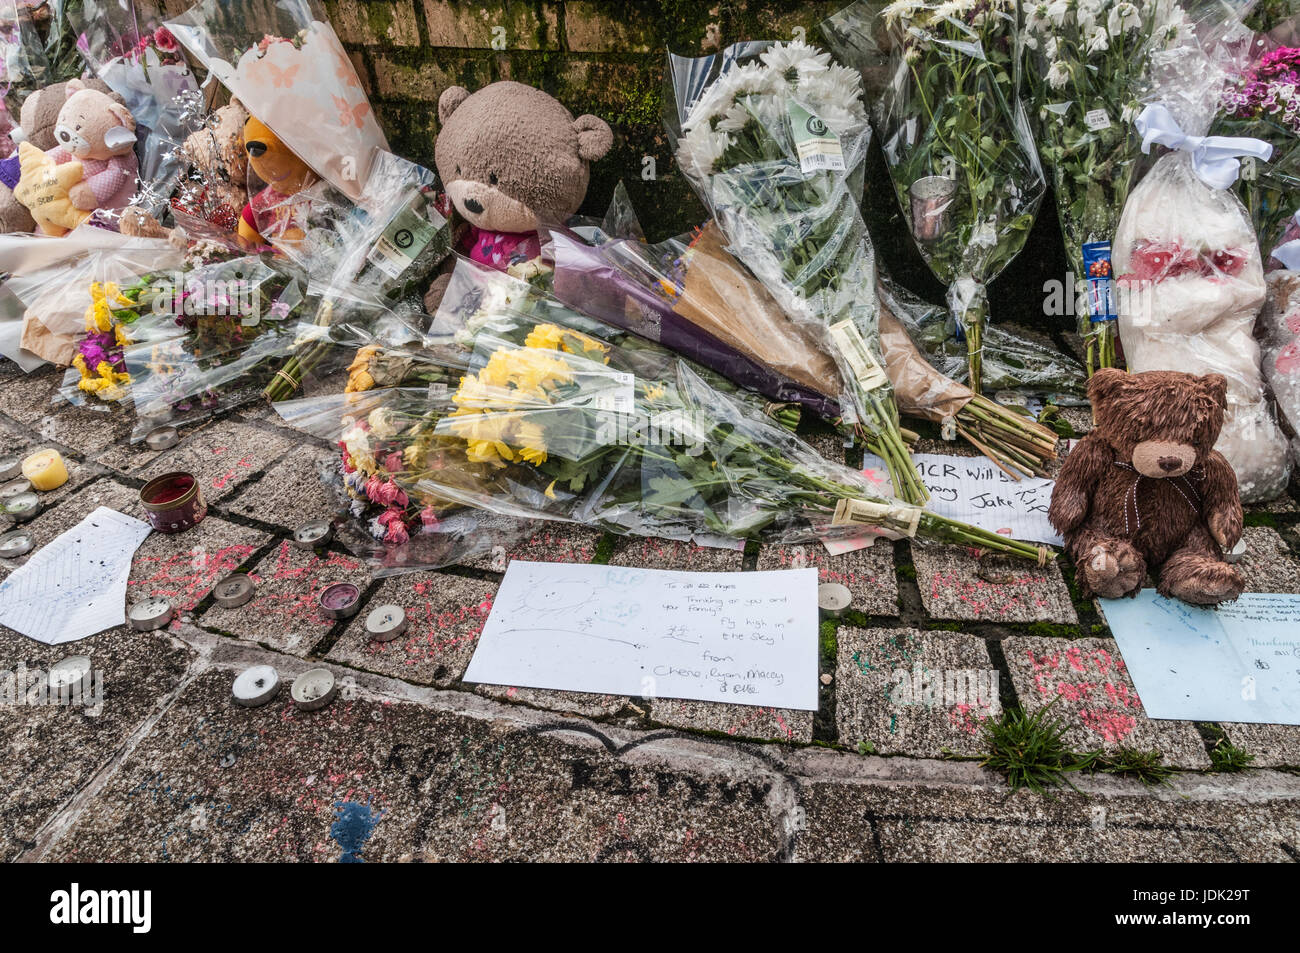 Stockport people mourn Manchester's victims of the bombing of Manchester Arena on May 2017 - Stock Image